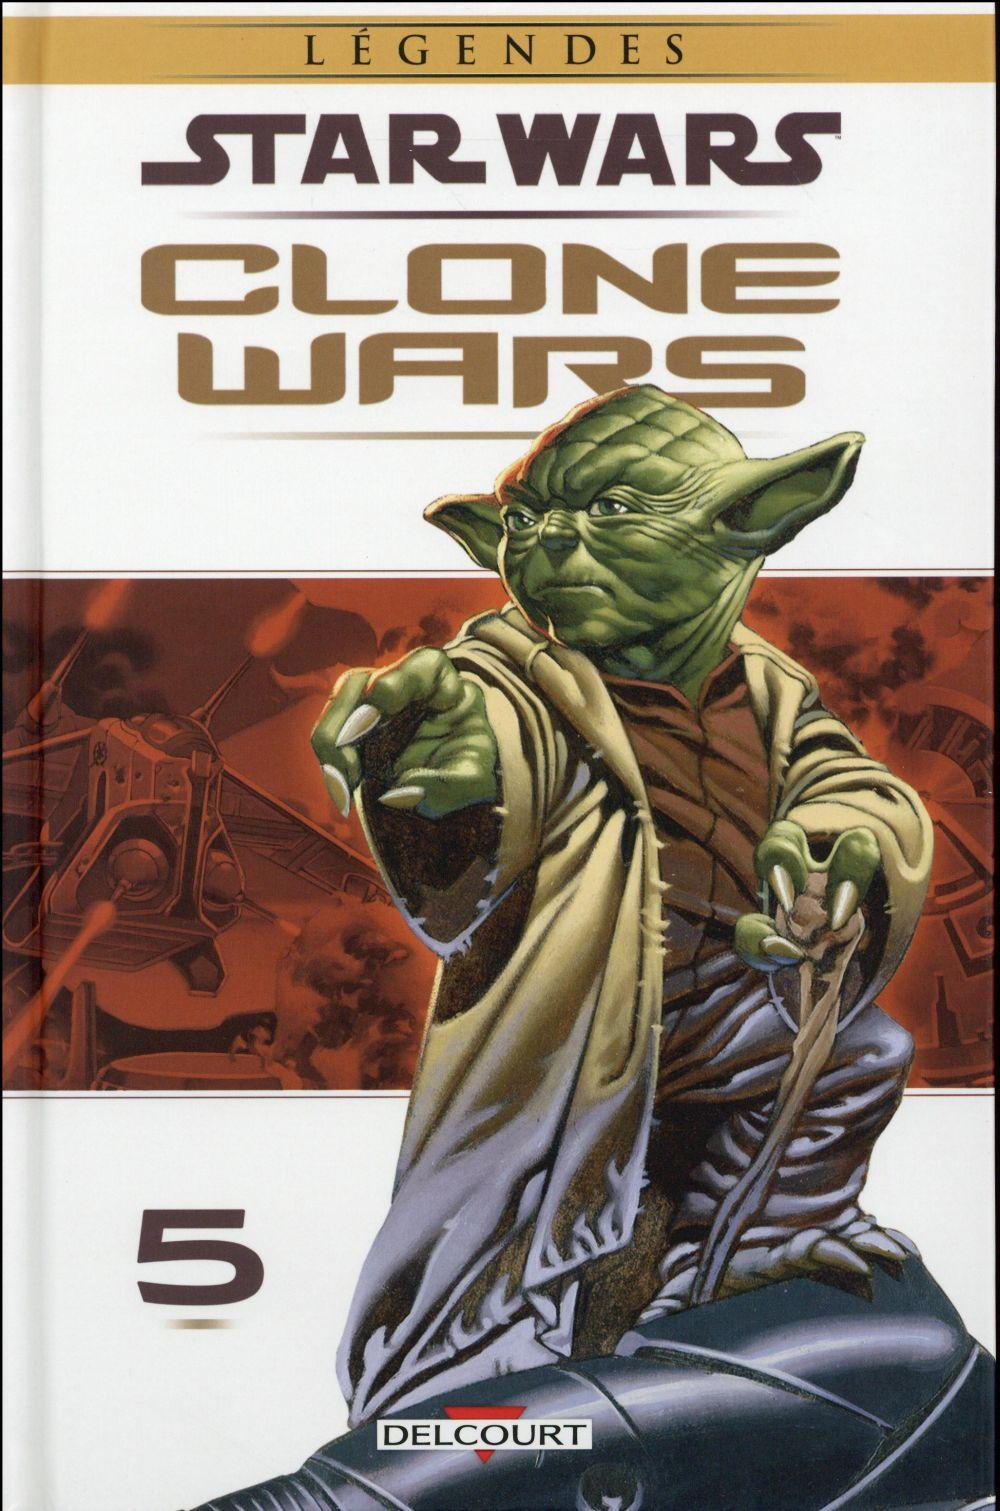 Star Wars - légendes ; clone wars T.5  - Collectif